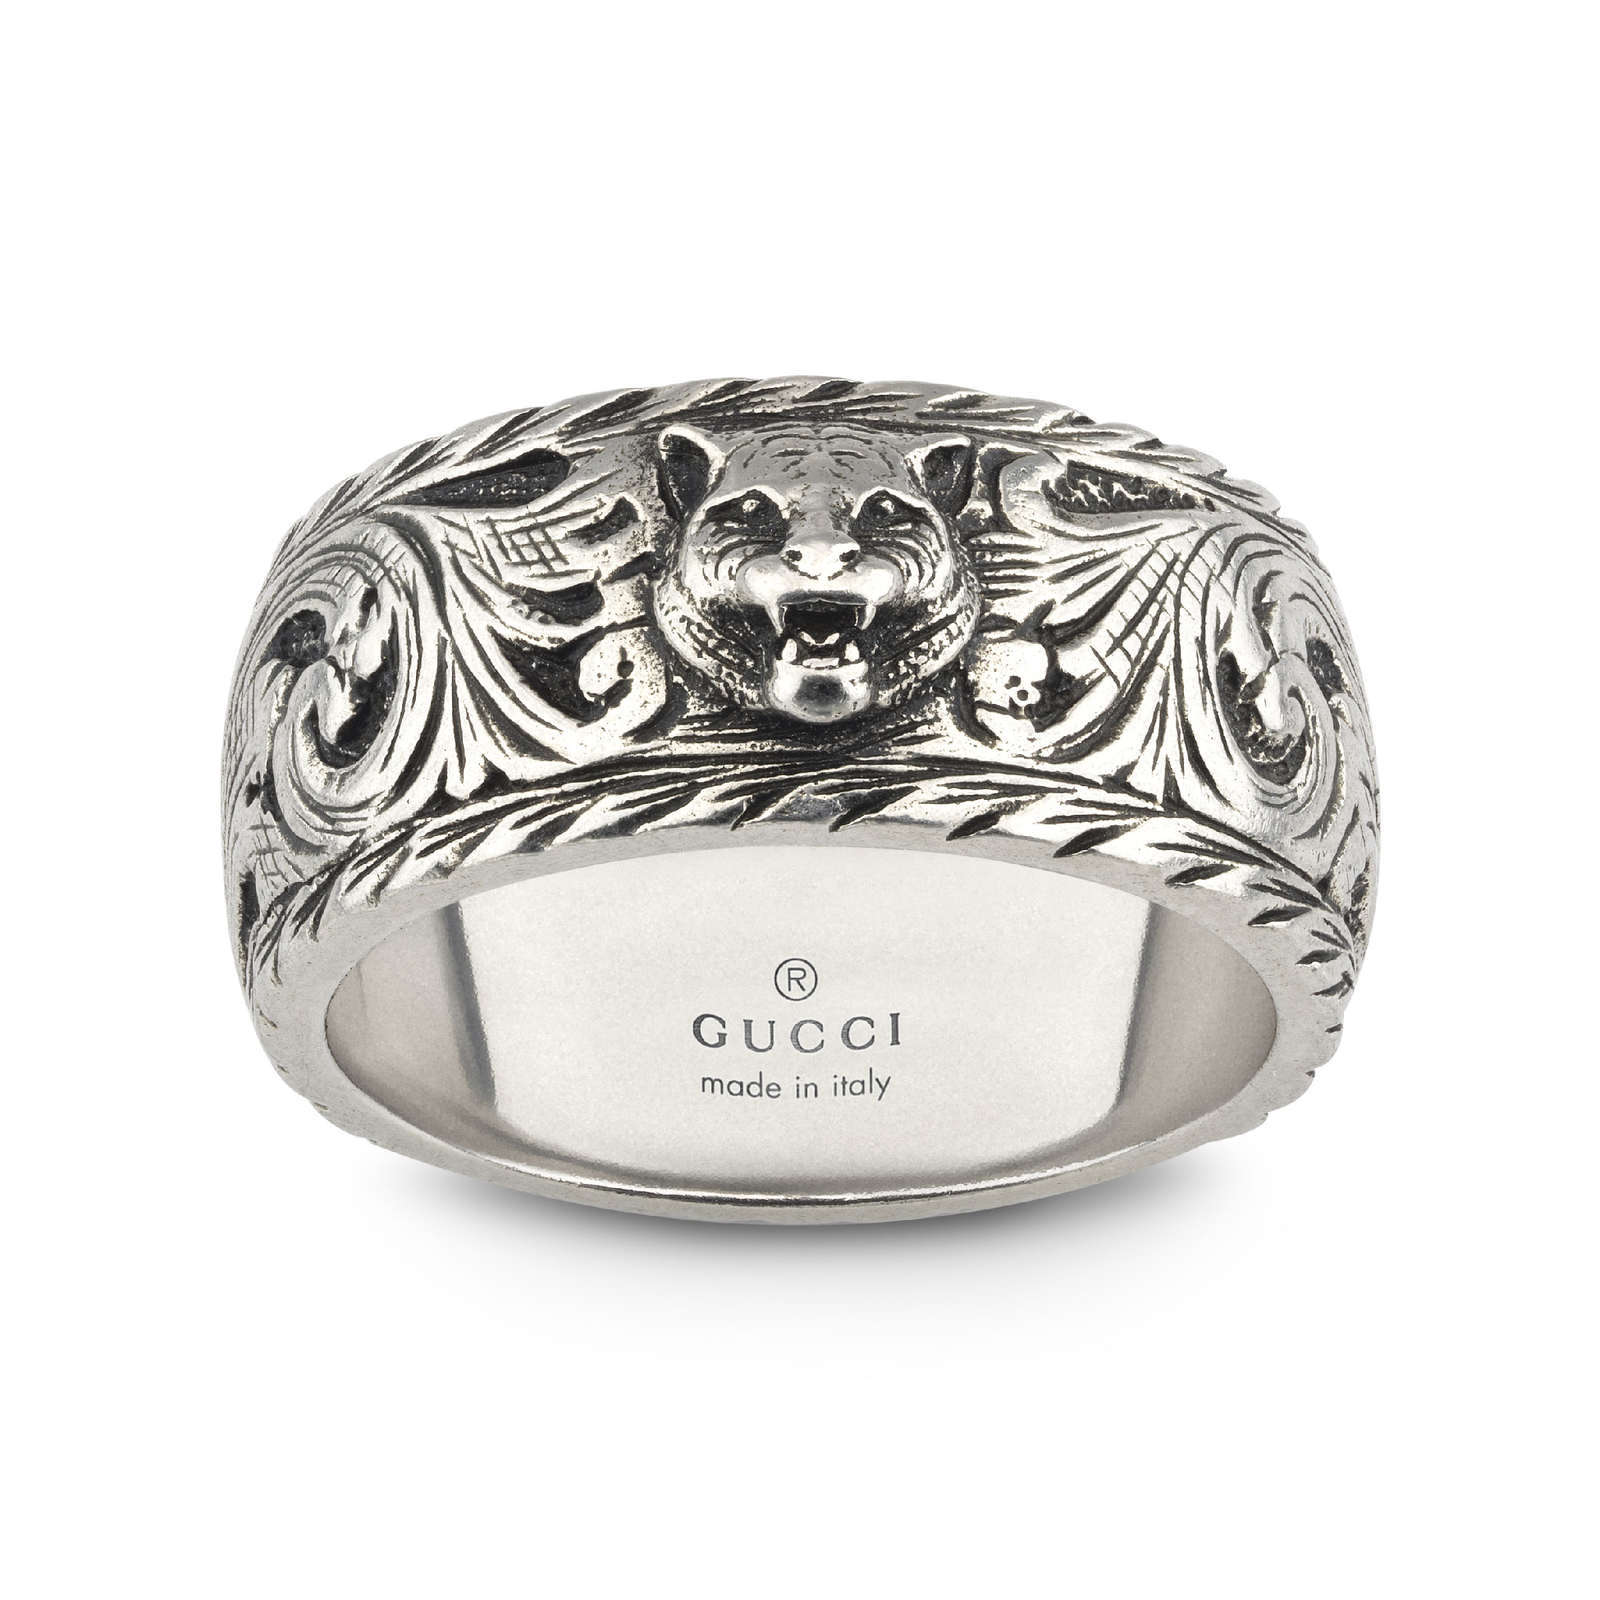 Gucci Gatto Thin Silver 10mm Ring with Feline Head - Ring Size J